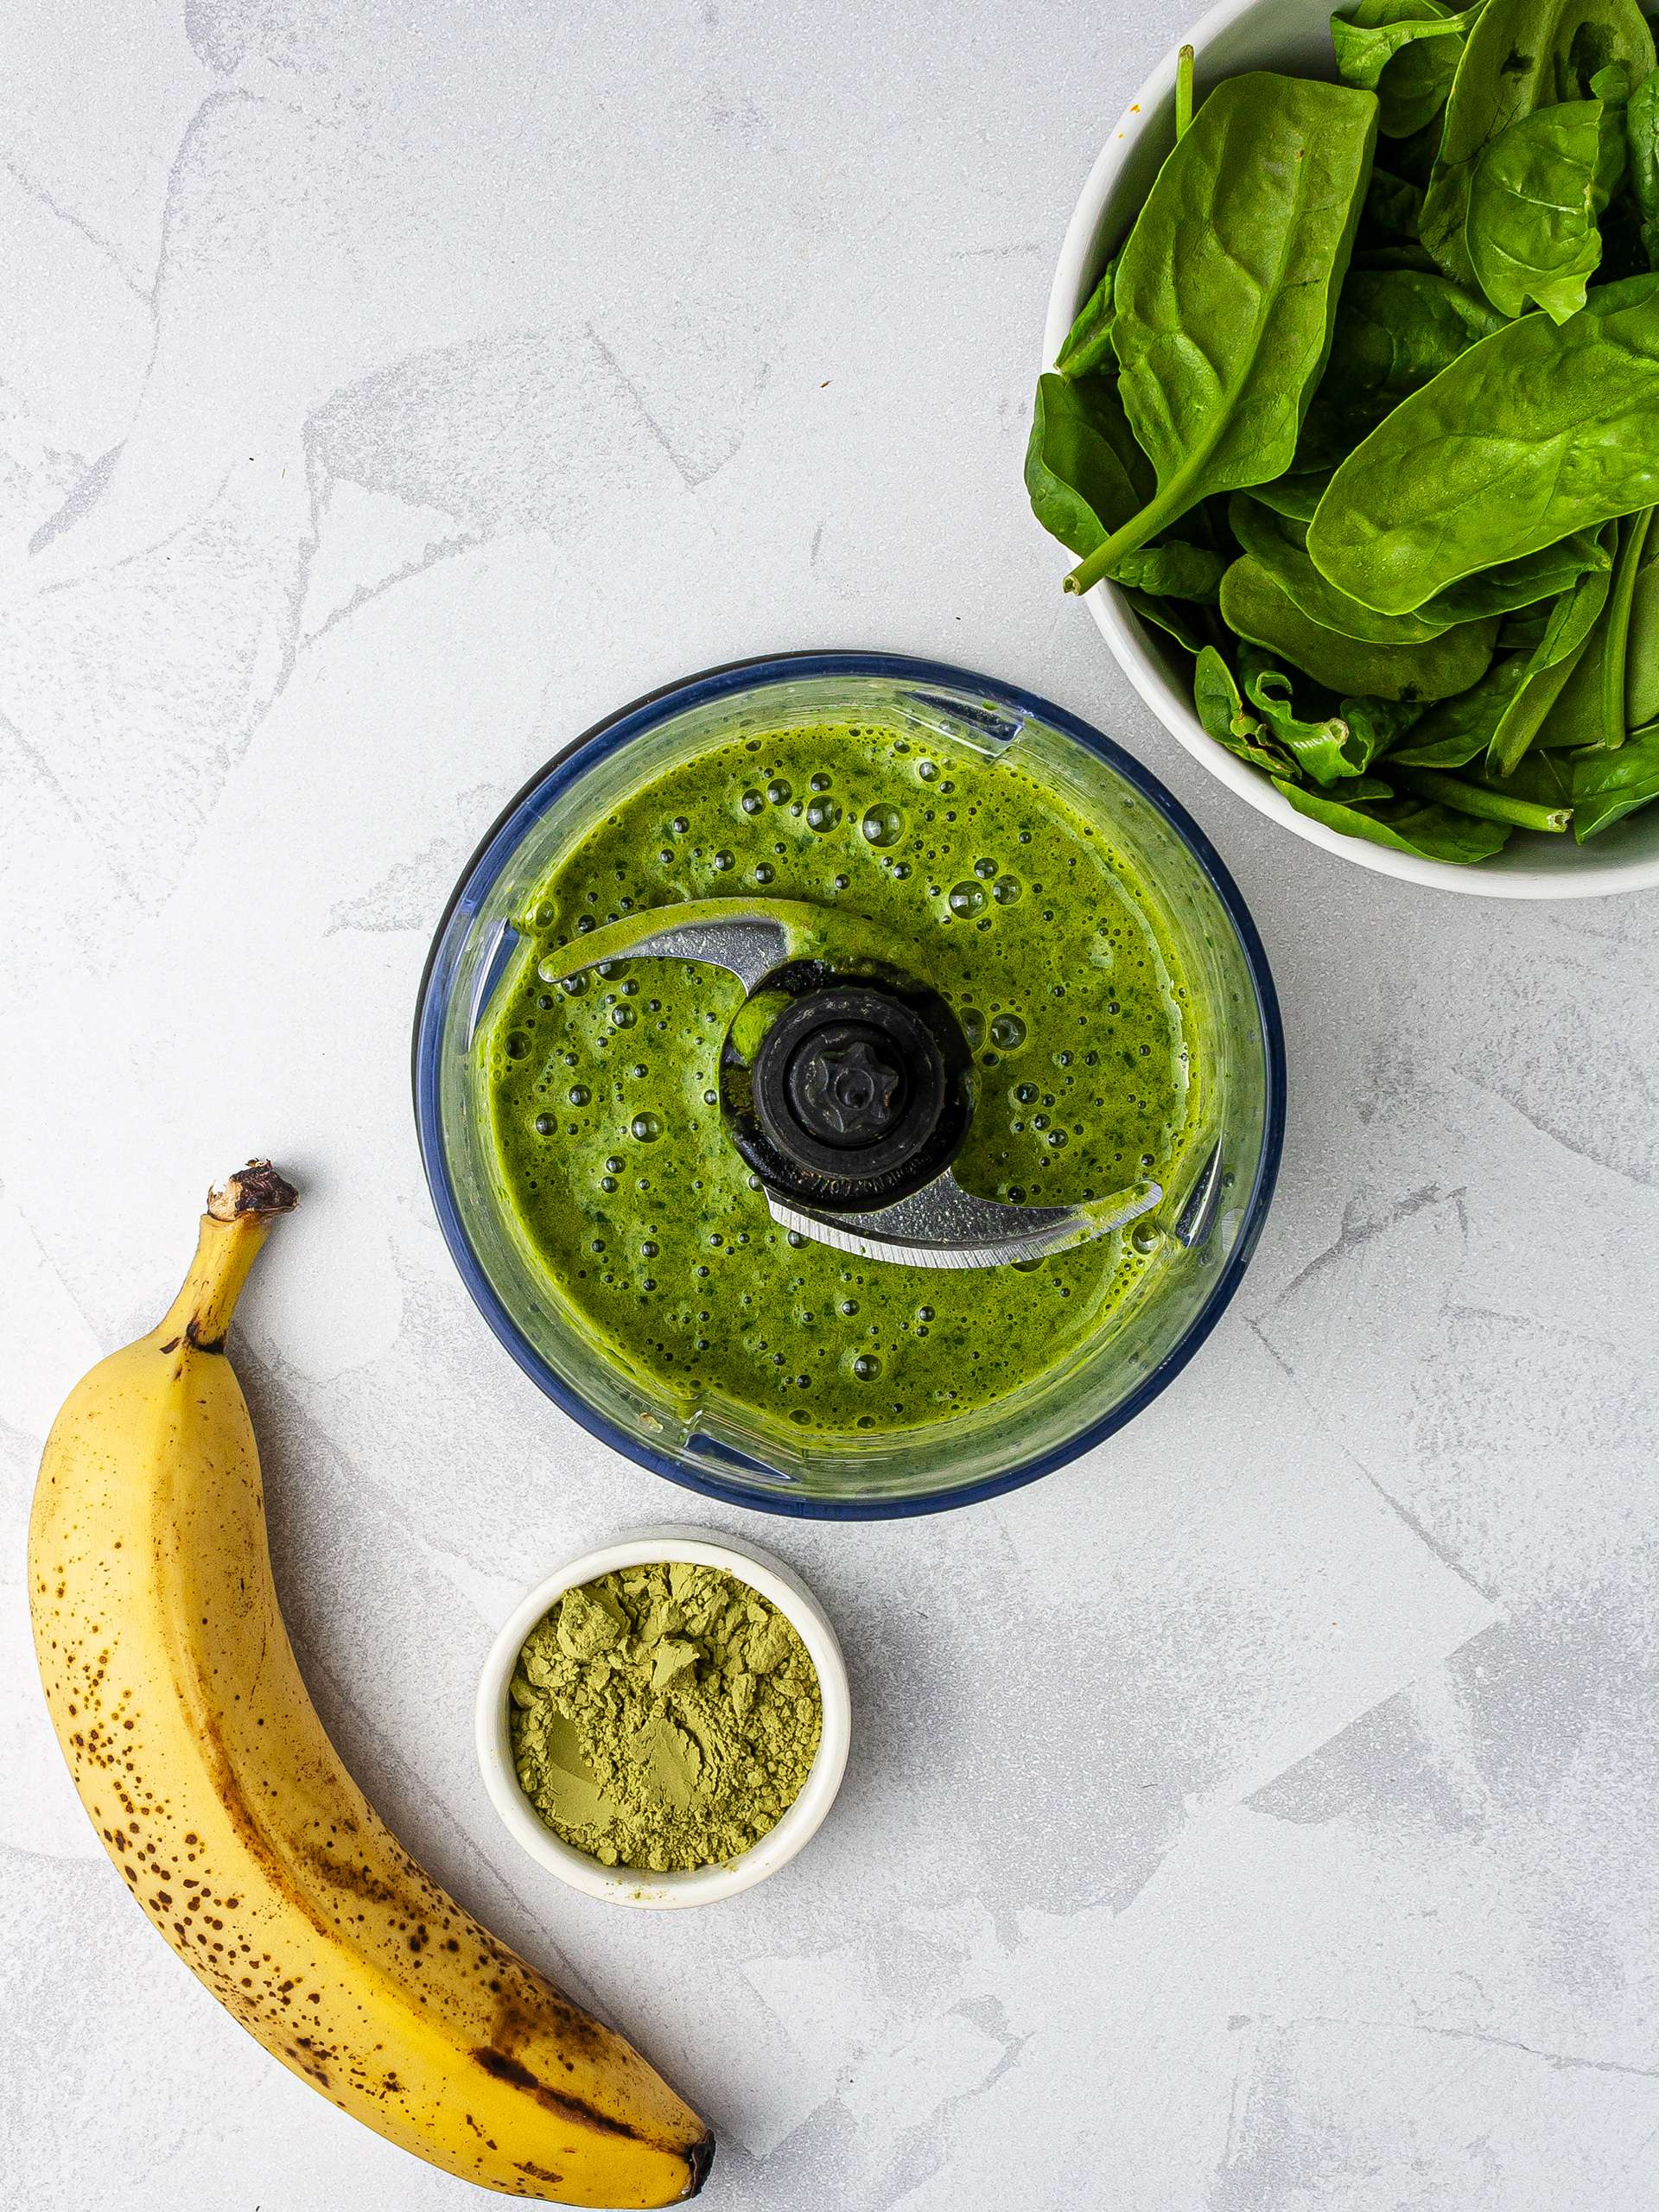 Green smoothie with spinach, banana, and match green tea powder.